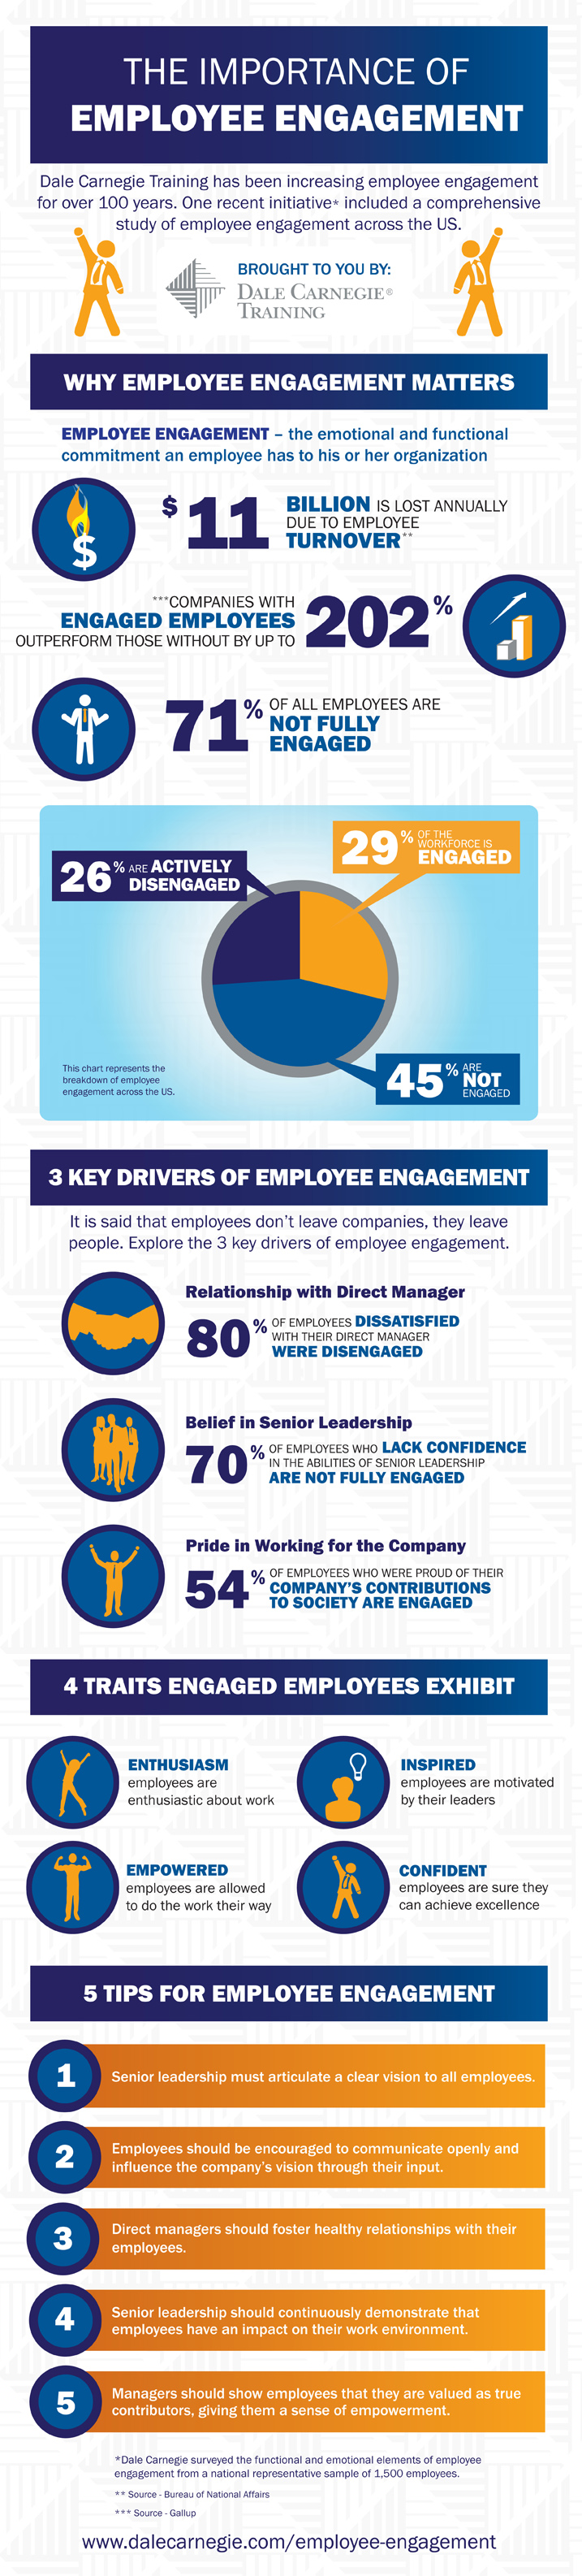 employee engagement dale carnegie research